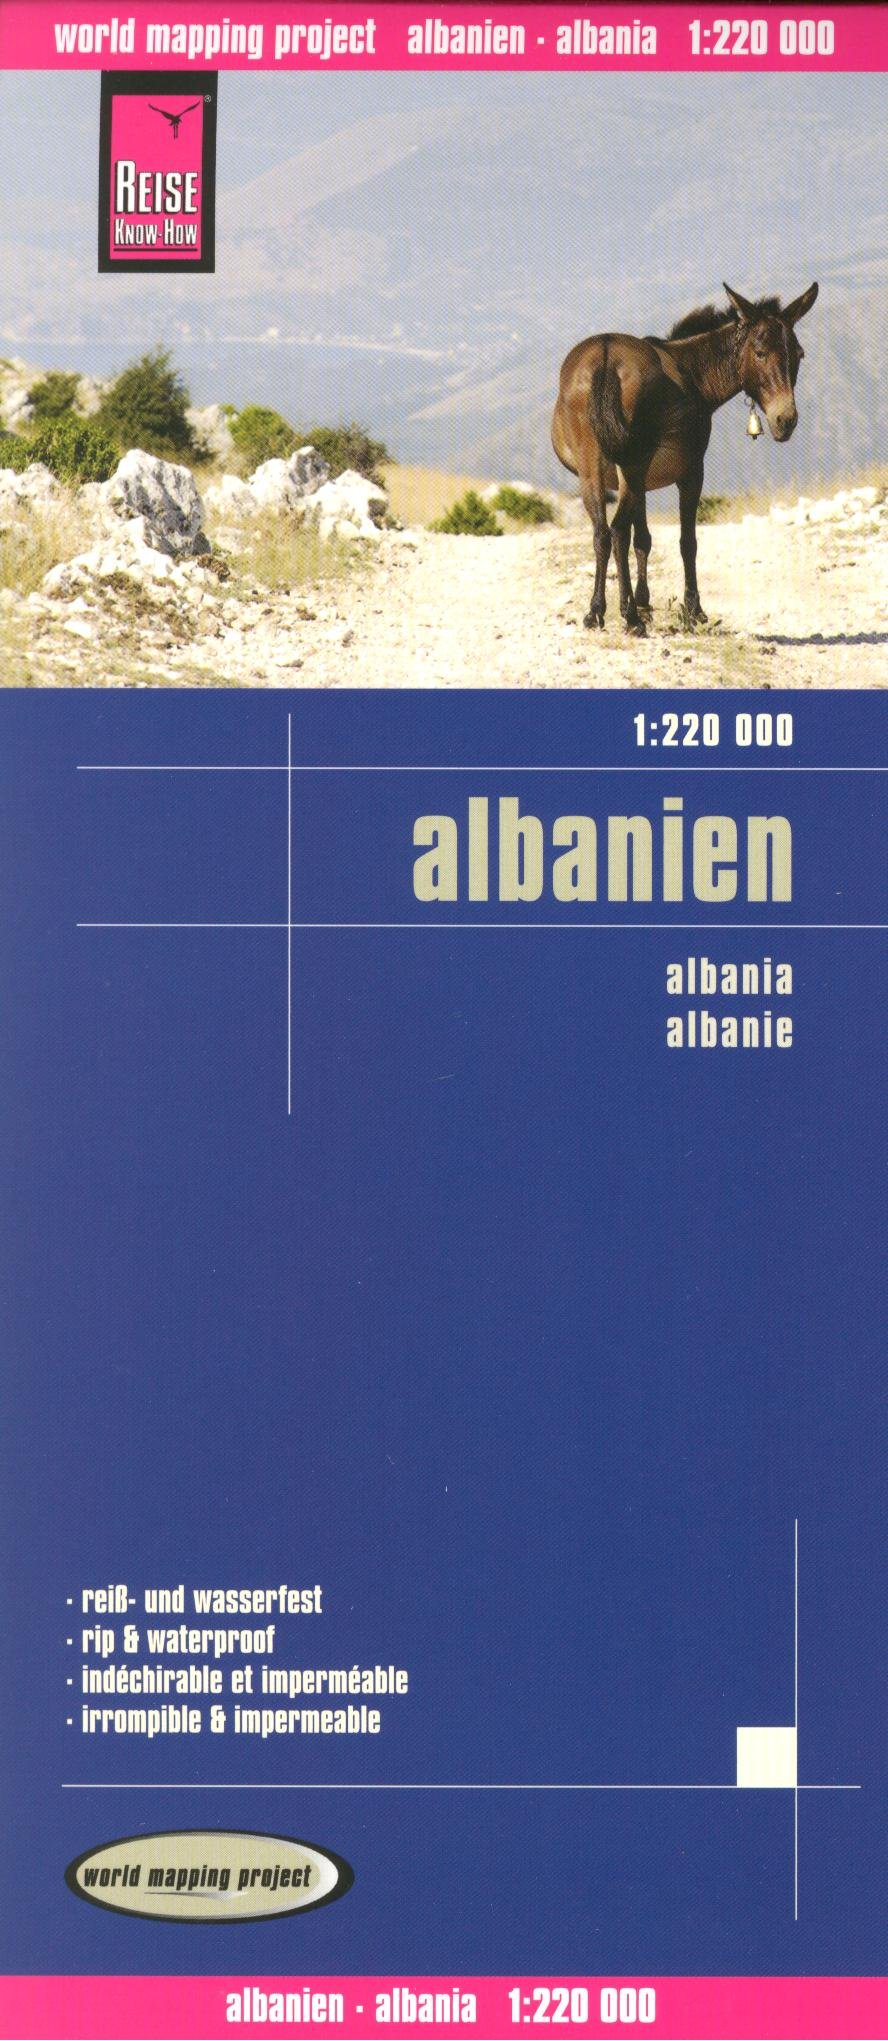 Read Online Albania 1:220,000 Travel Map, waterproof, GPS-compatible, REISE, 2012 edition pdf